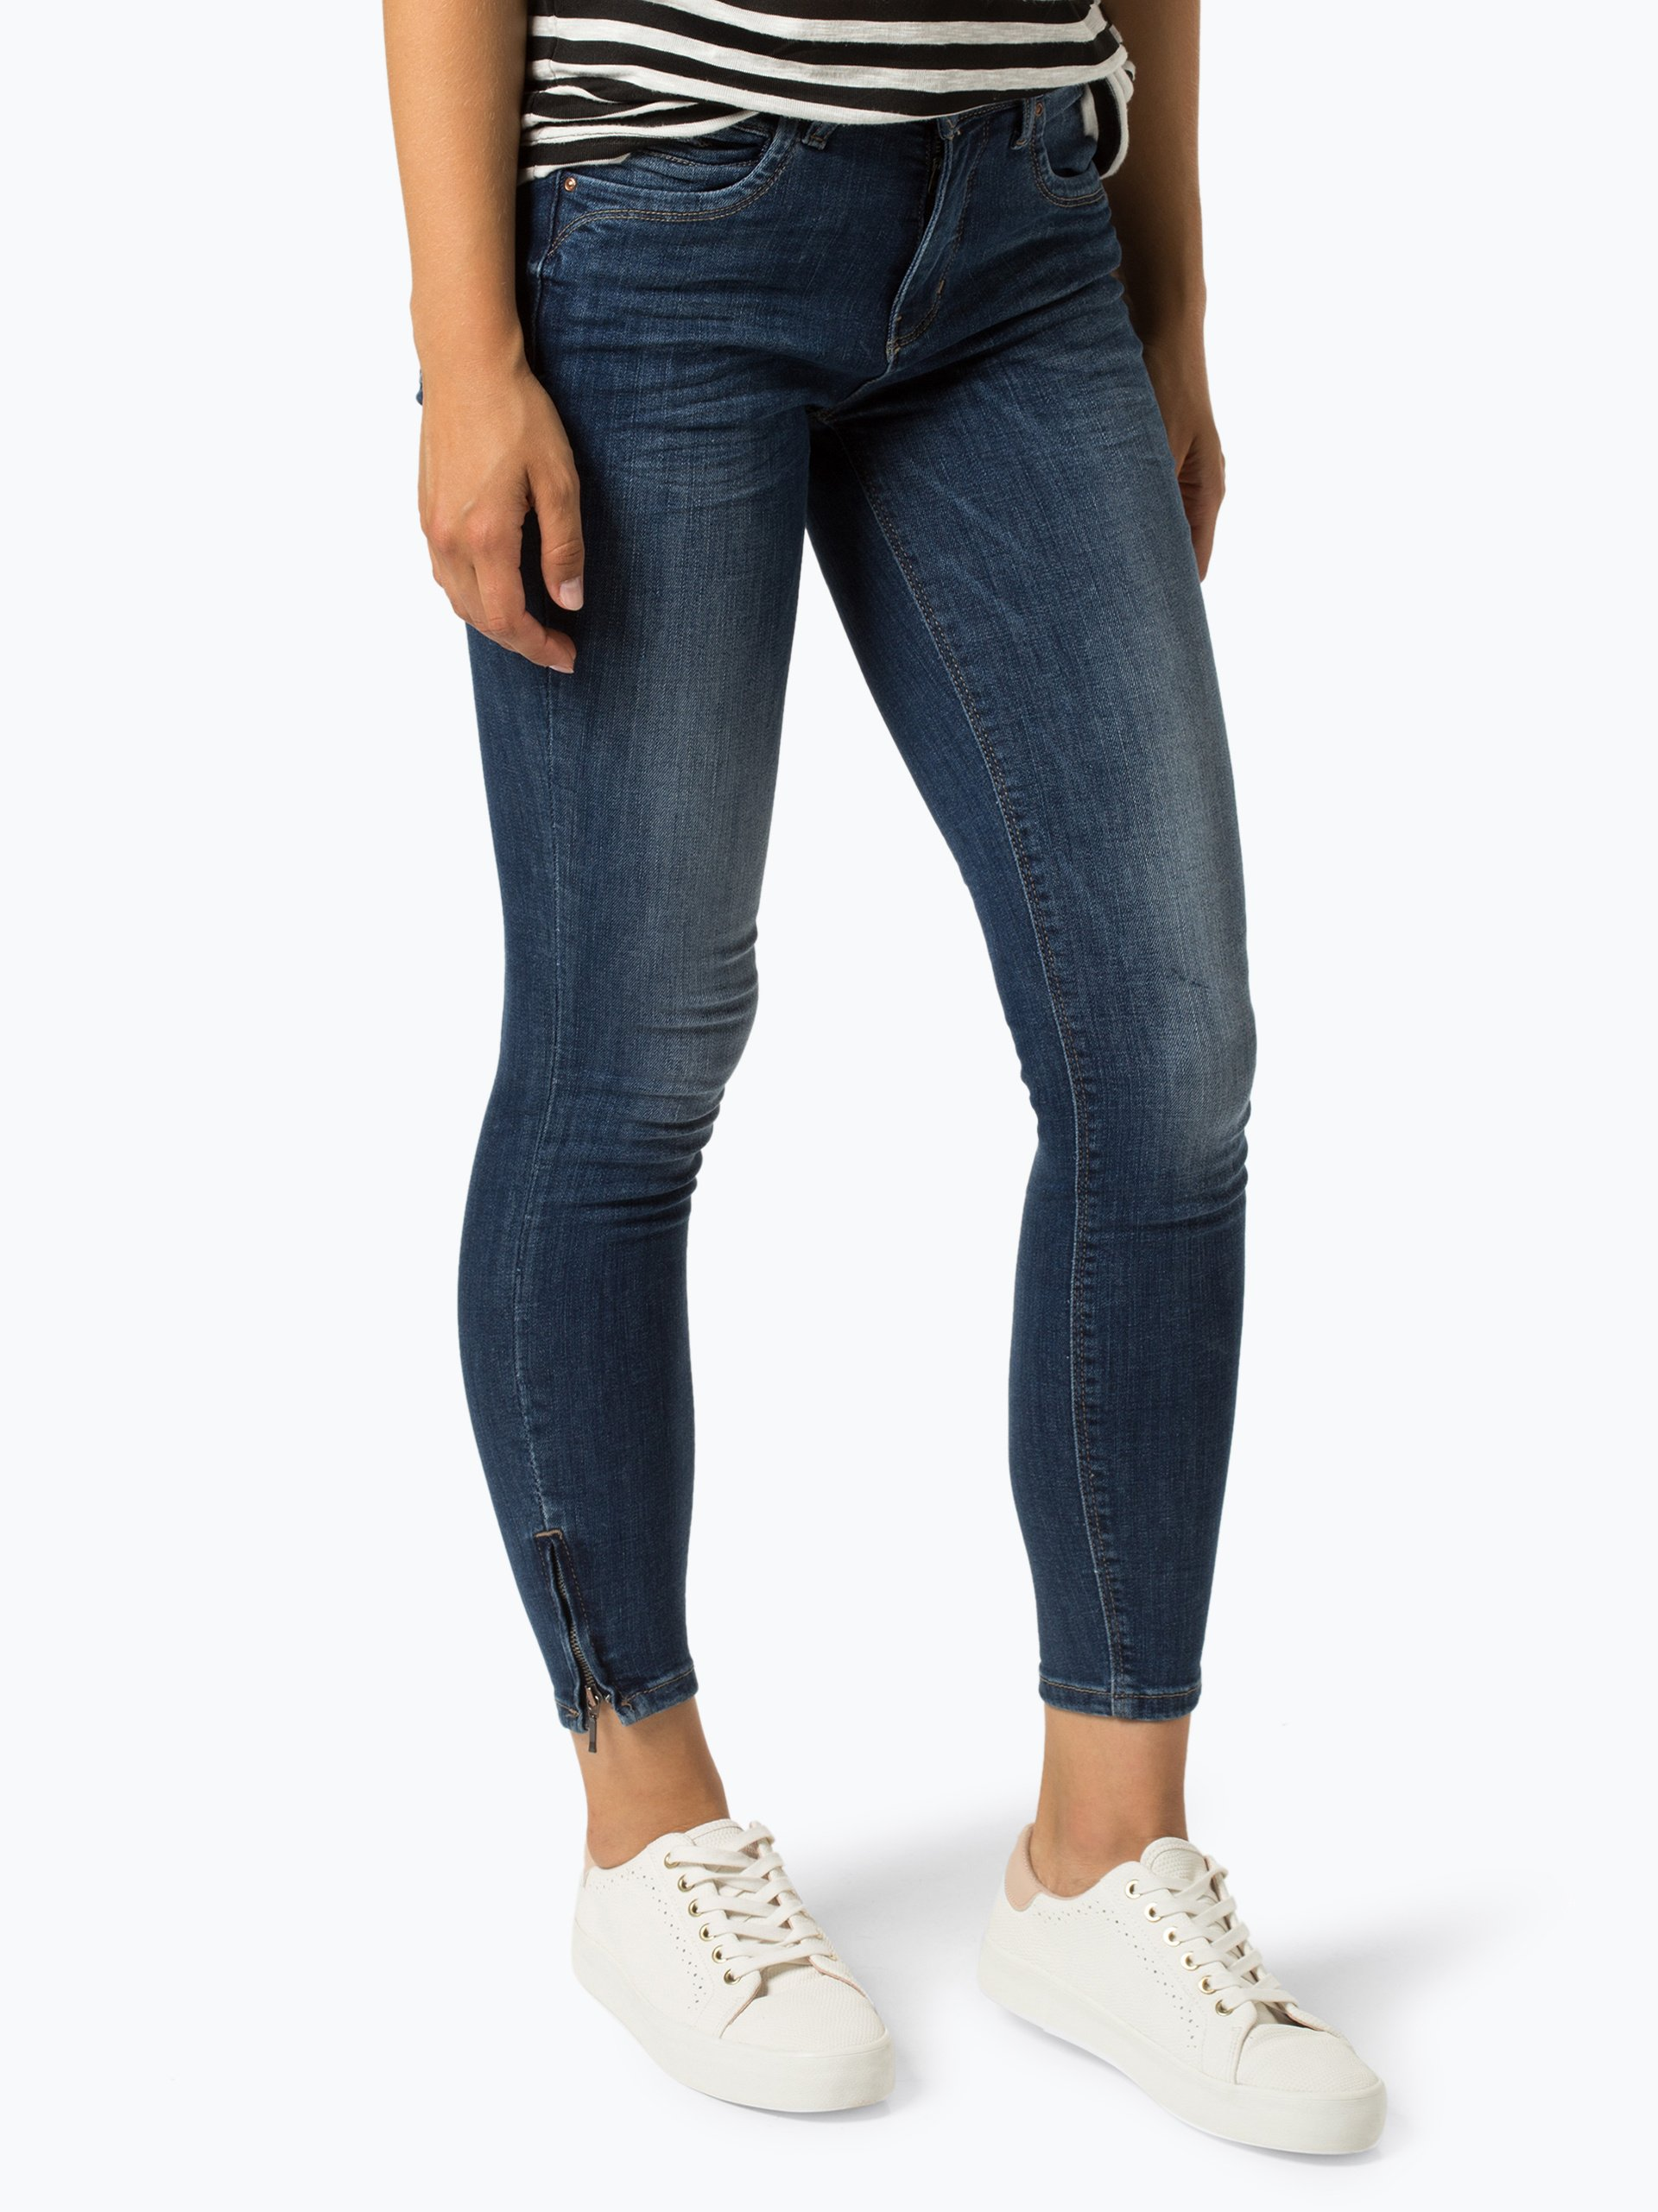 ONLY Damen Jeans - Kendell